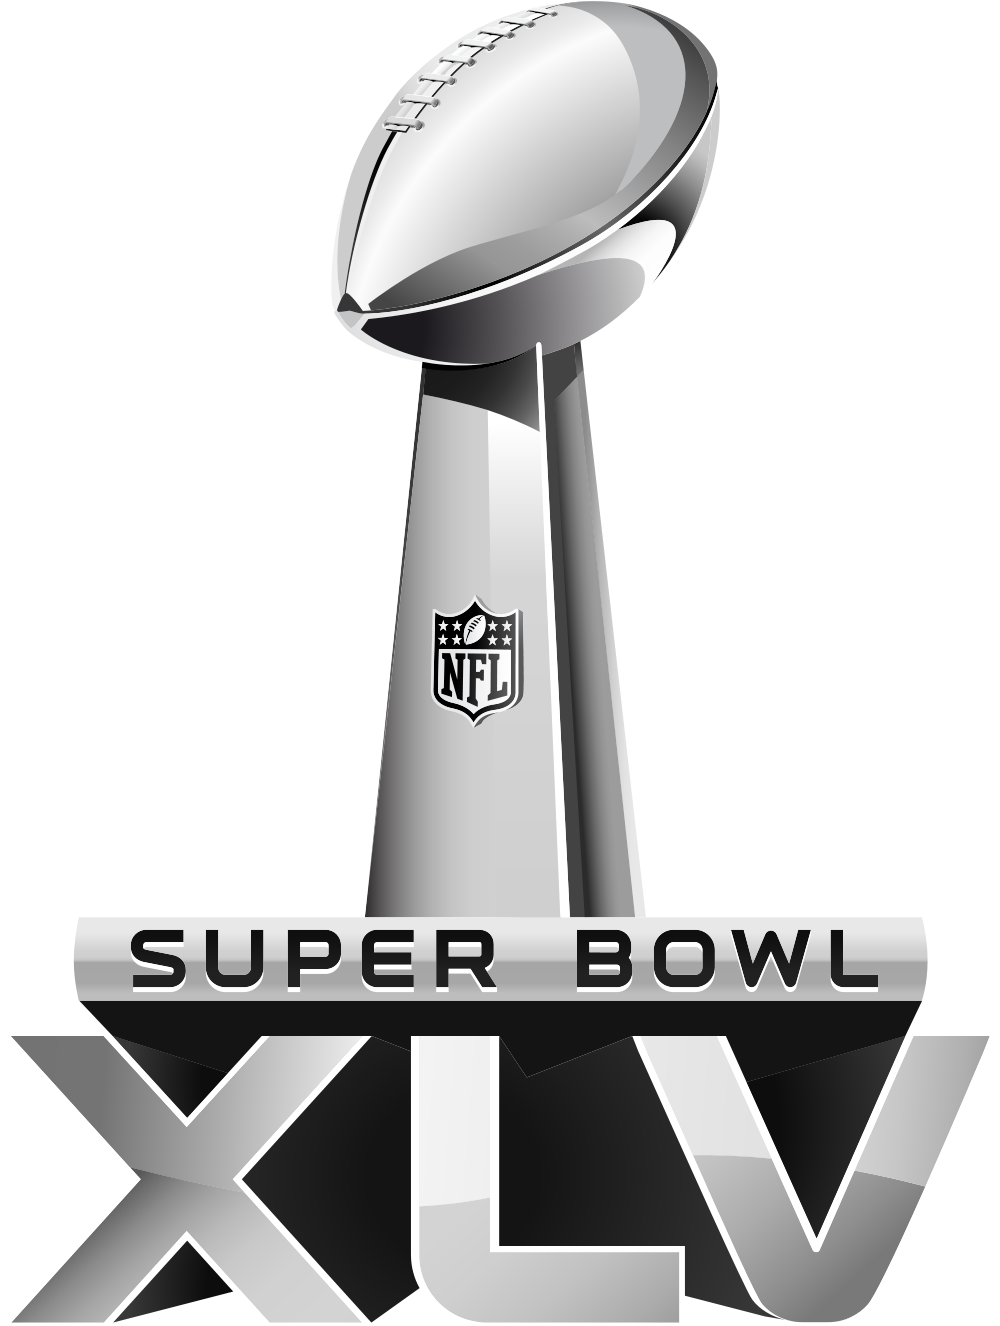 Super Bowl 45 Logo The Wearing Of the Gre...